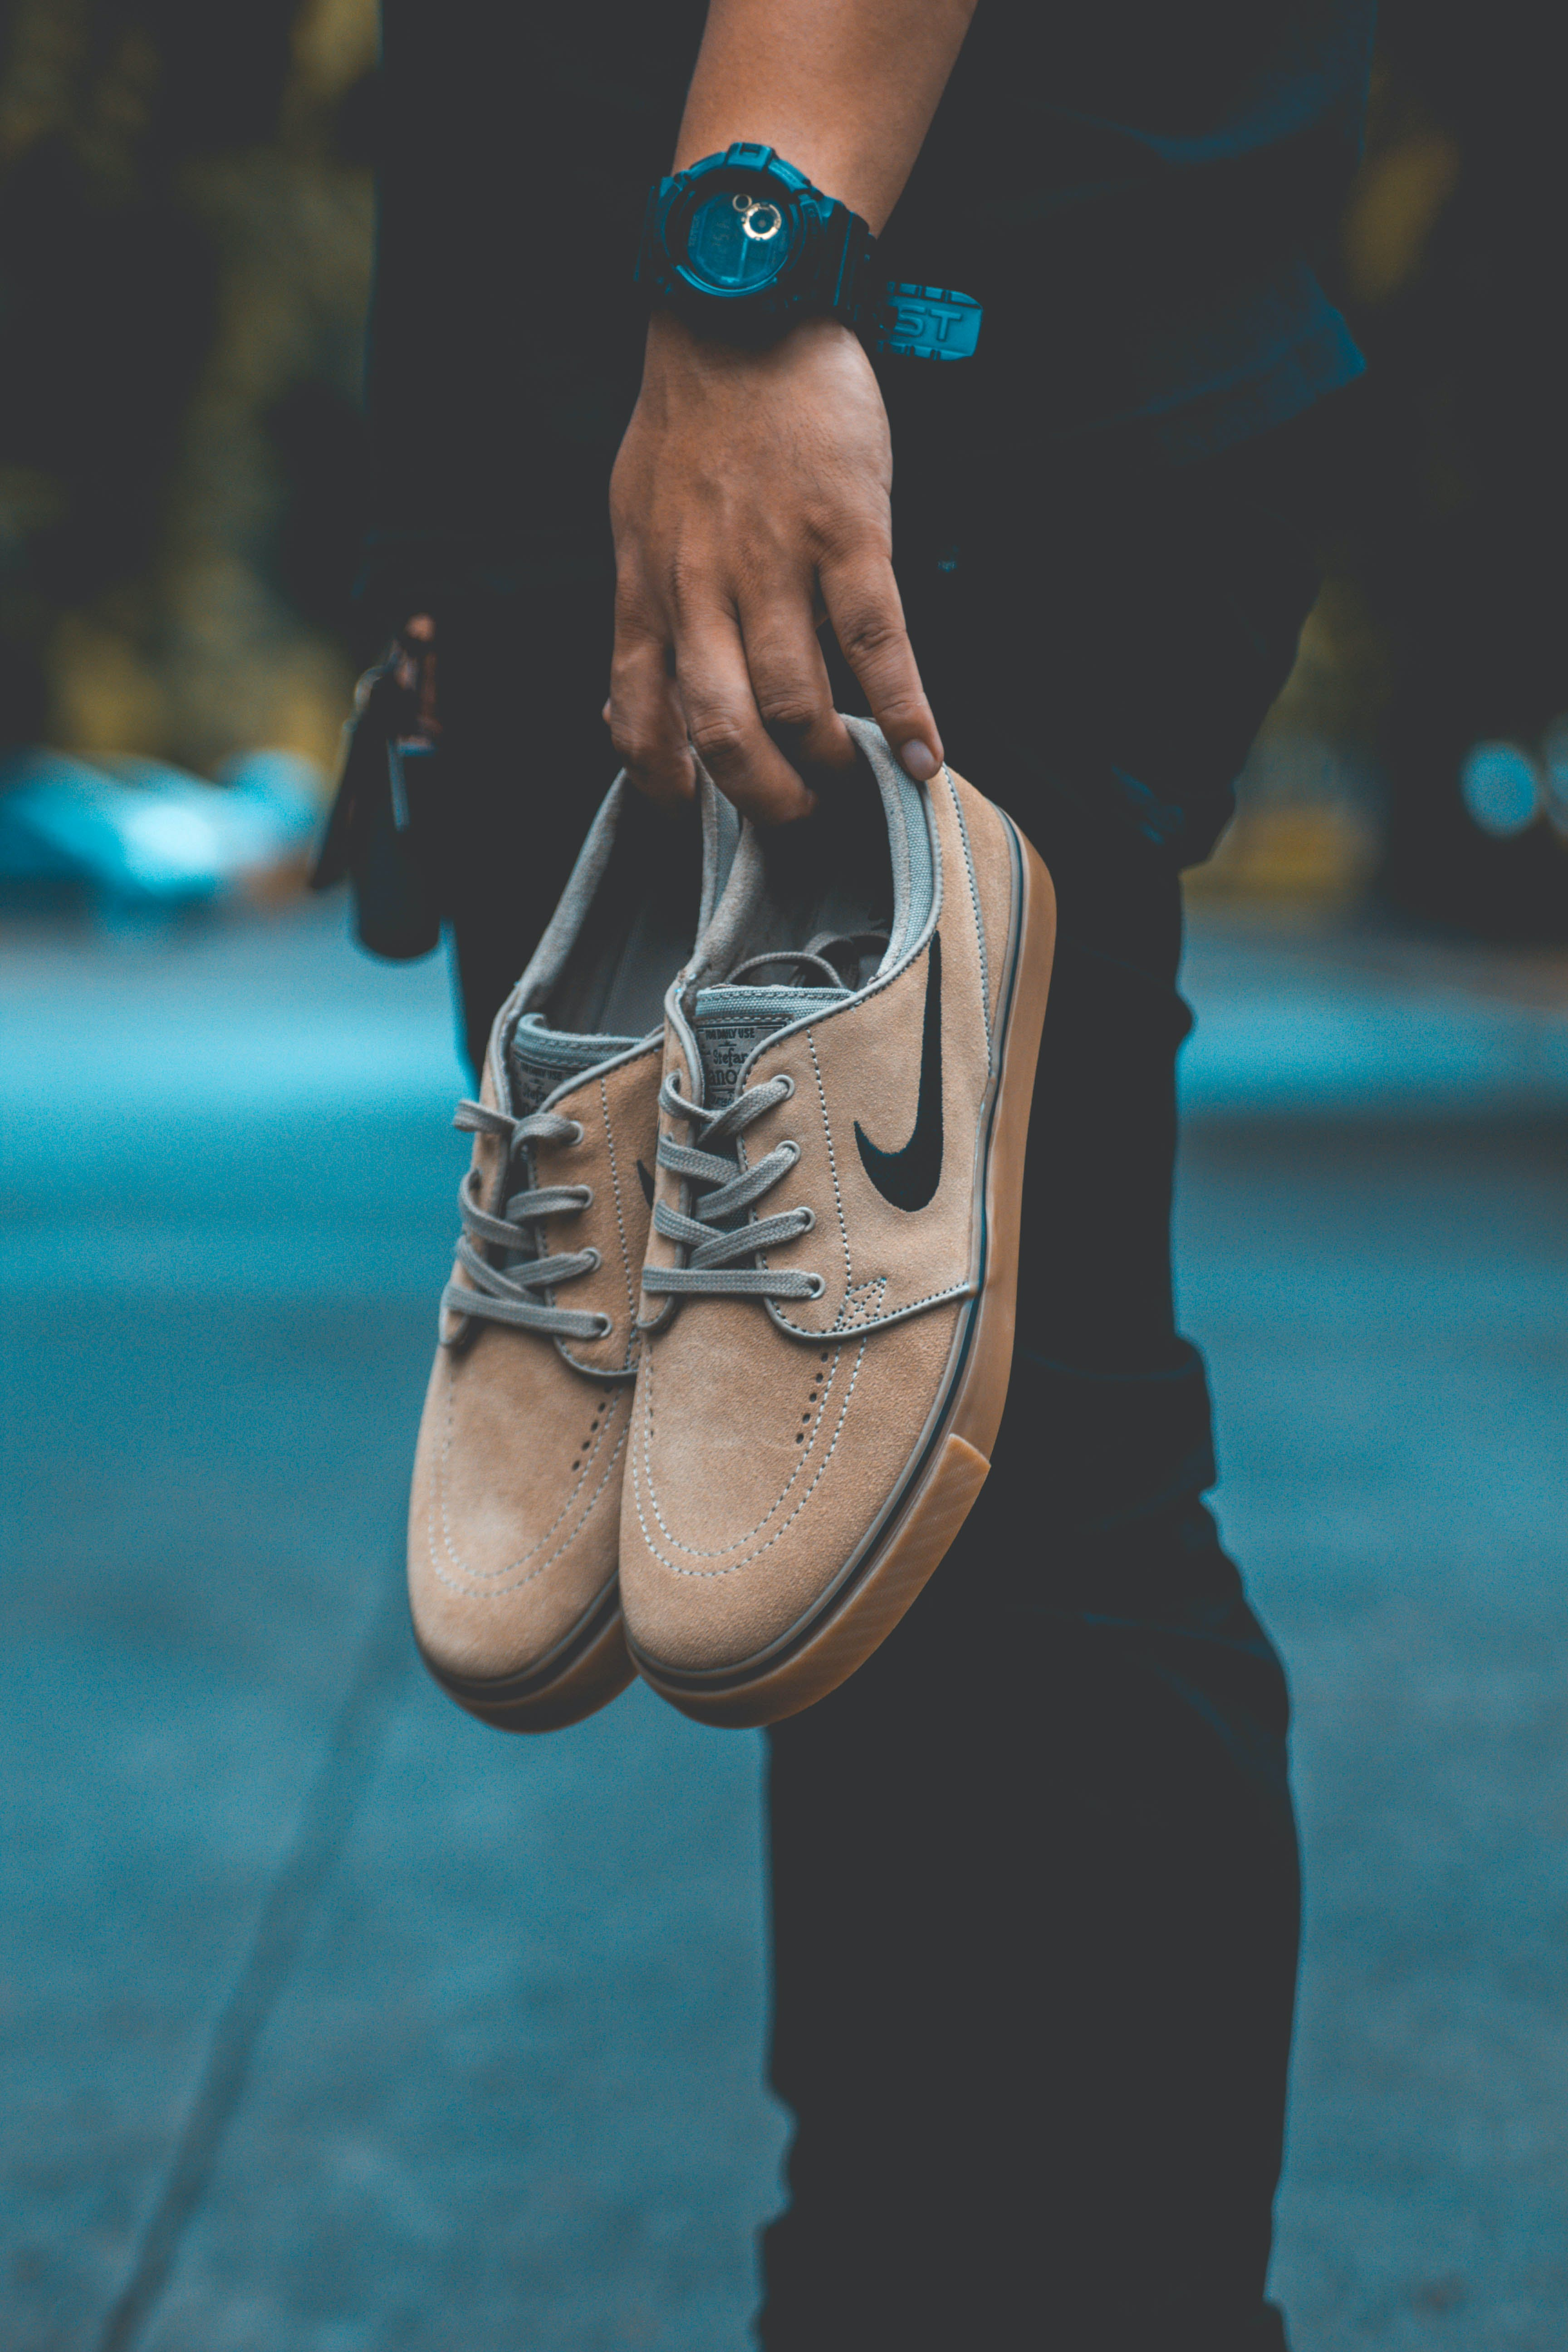 Person Holding Pair of Brown Nike Sneakers